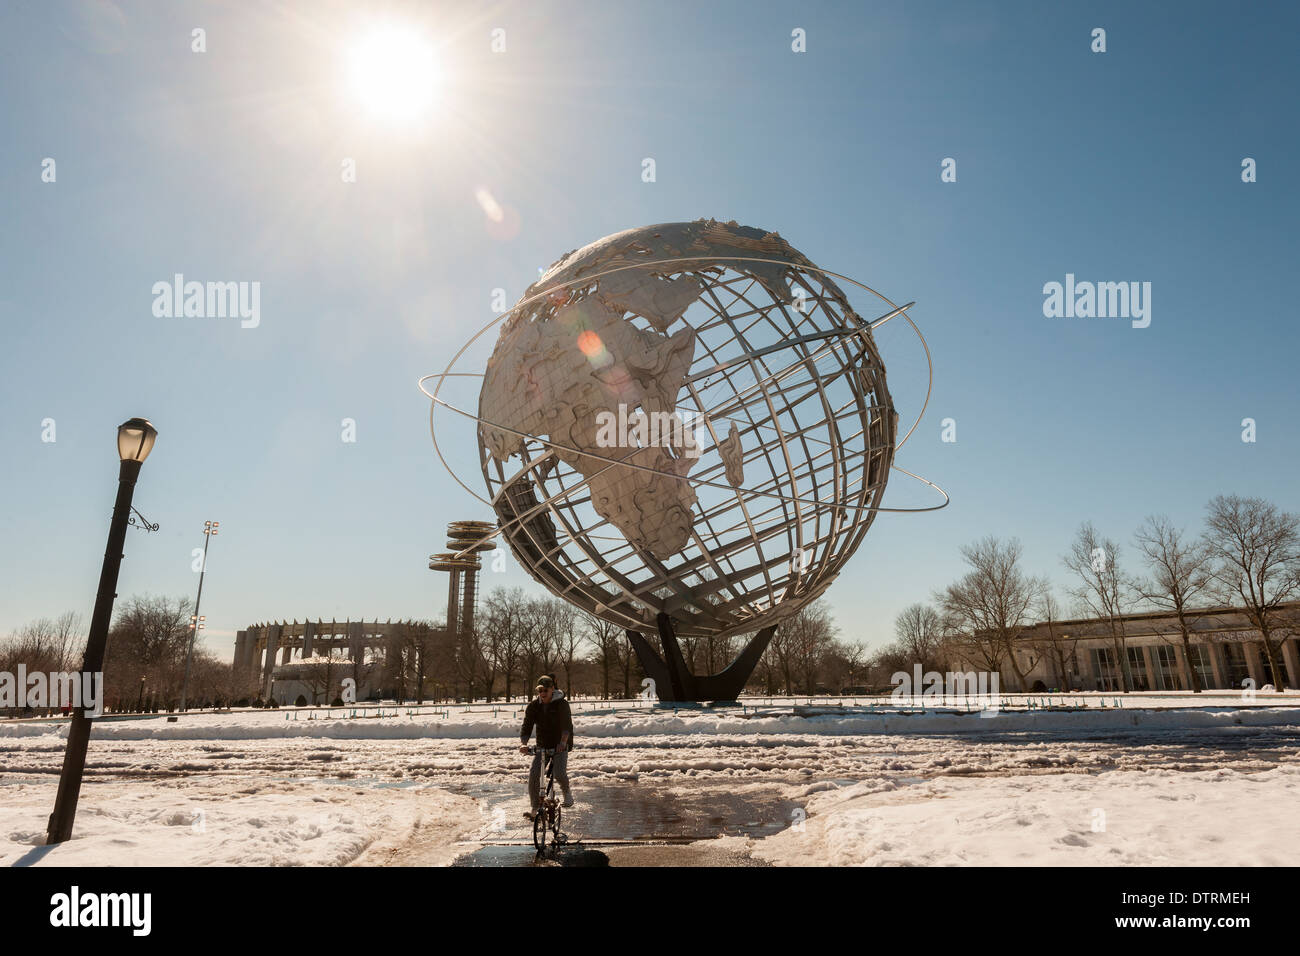 The Unisphere and the New York State Pavilion, left, from the 1964-65 World's Fair in Flushing Corona Meadows Park in Queens - Stock Image